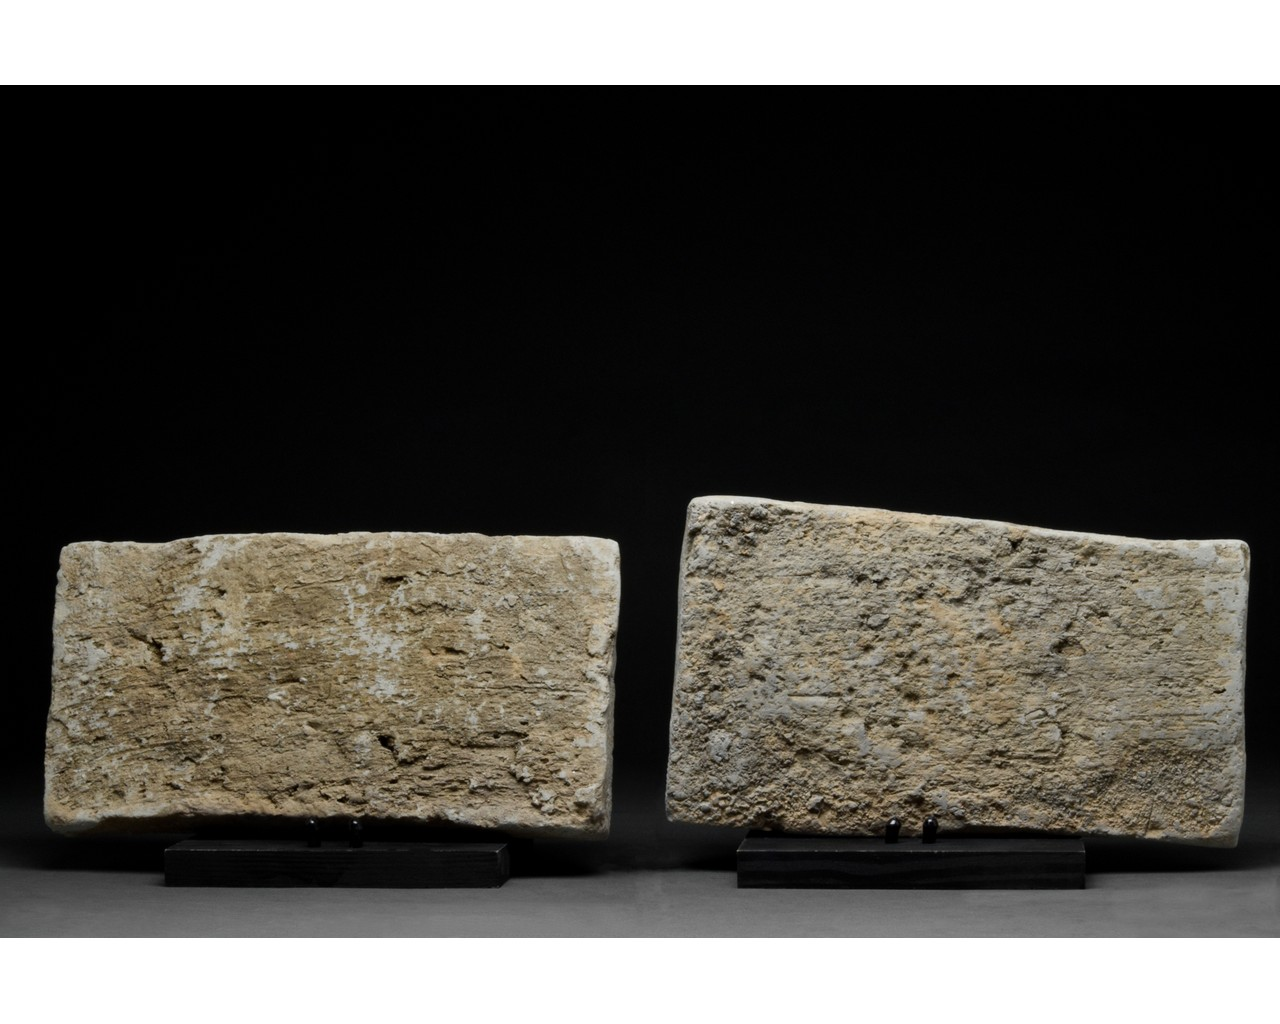 PAIR OF CHINESE SONG DYNASTY TERRACOTTA BRICKS - Image 3 of 5